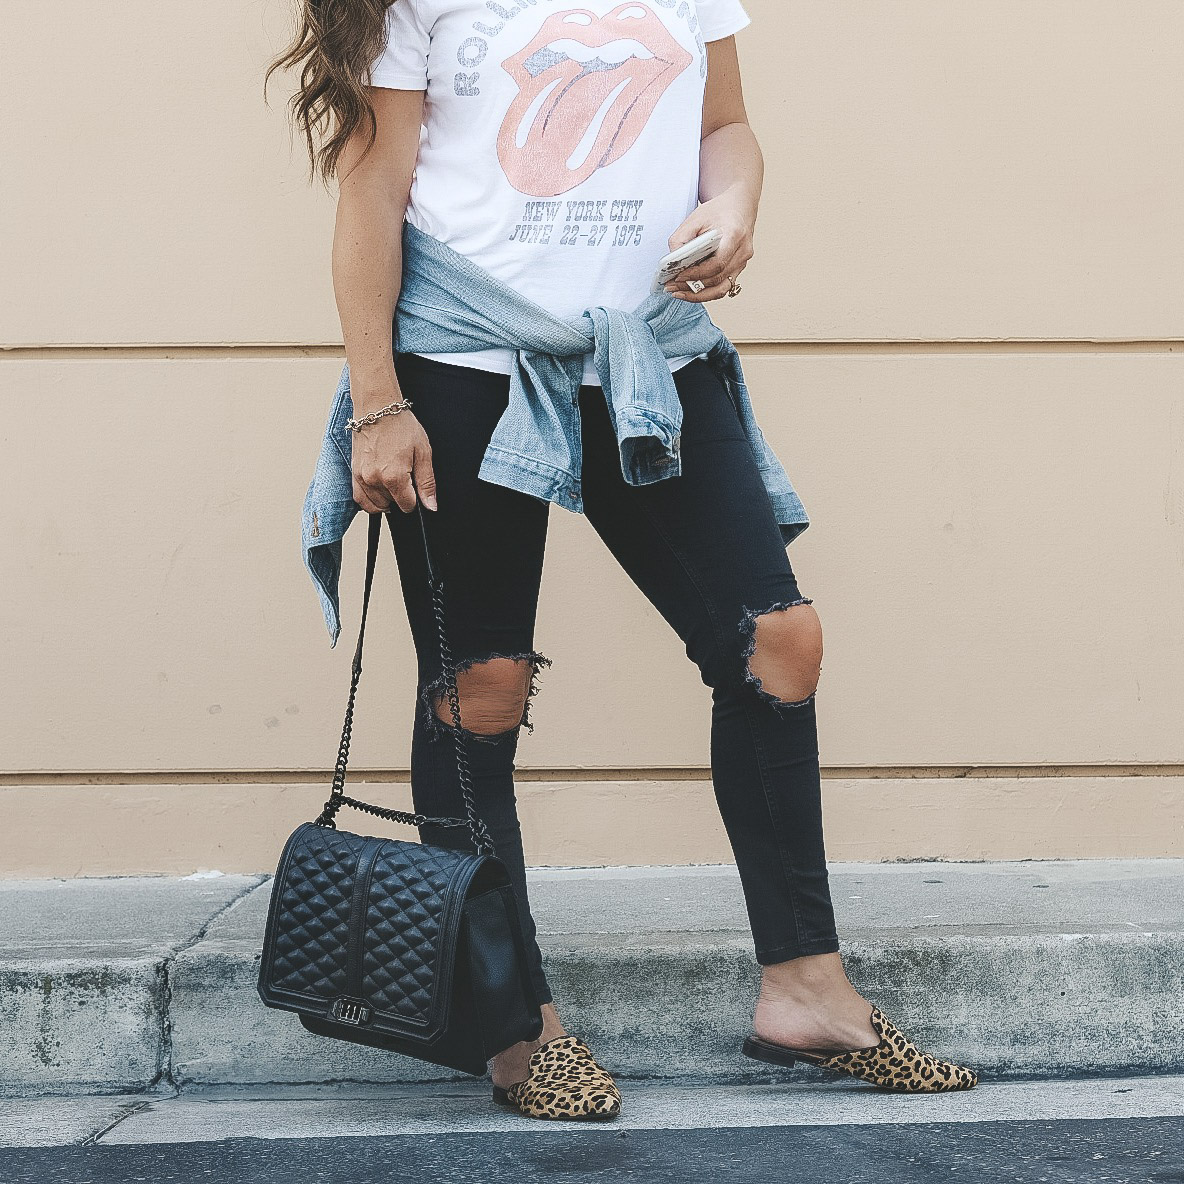 Leopard shoes and accessories for fall 2018.  Steve Madden Velocity mules, Rebecca Minkoff love crossbody bag, Free People